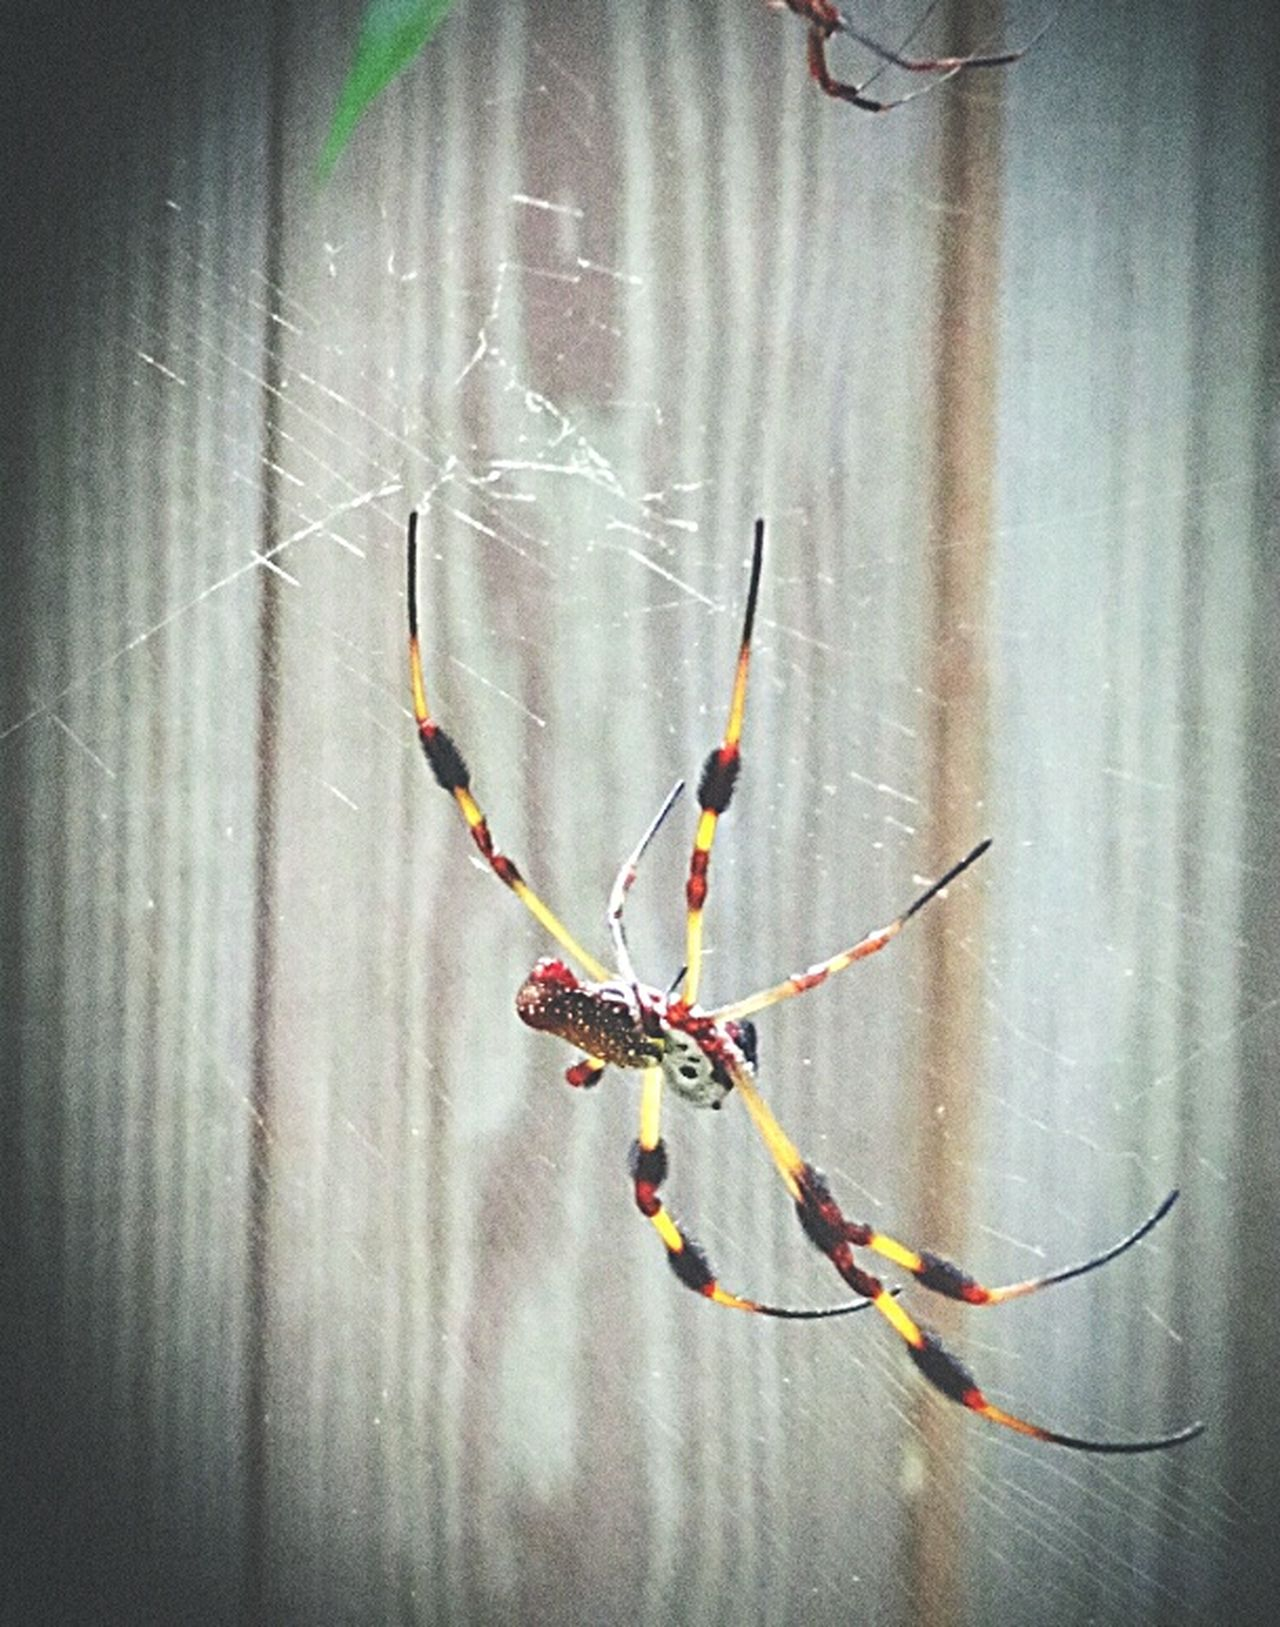 Spider Taking Photos Bugslife Insect Photo Insect Photography Insects  Itsy Bitsy Spider Macro Beauty